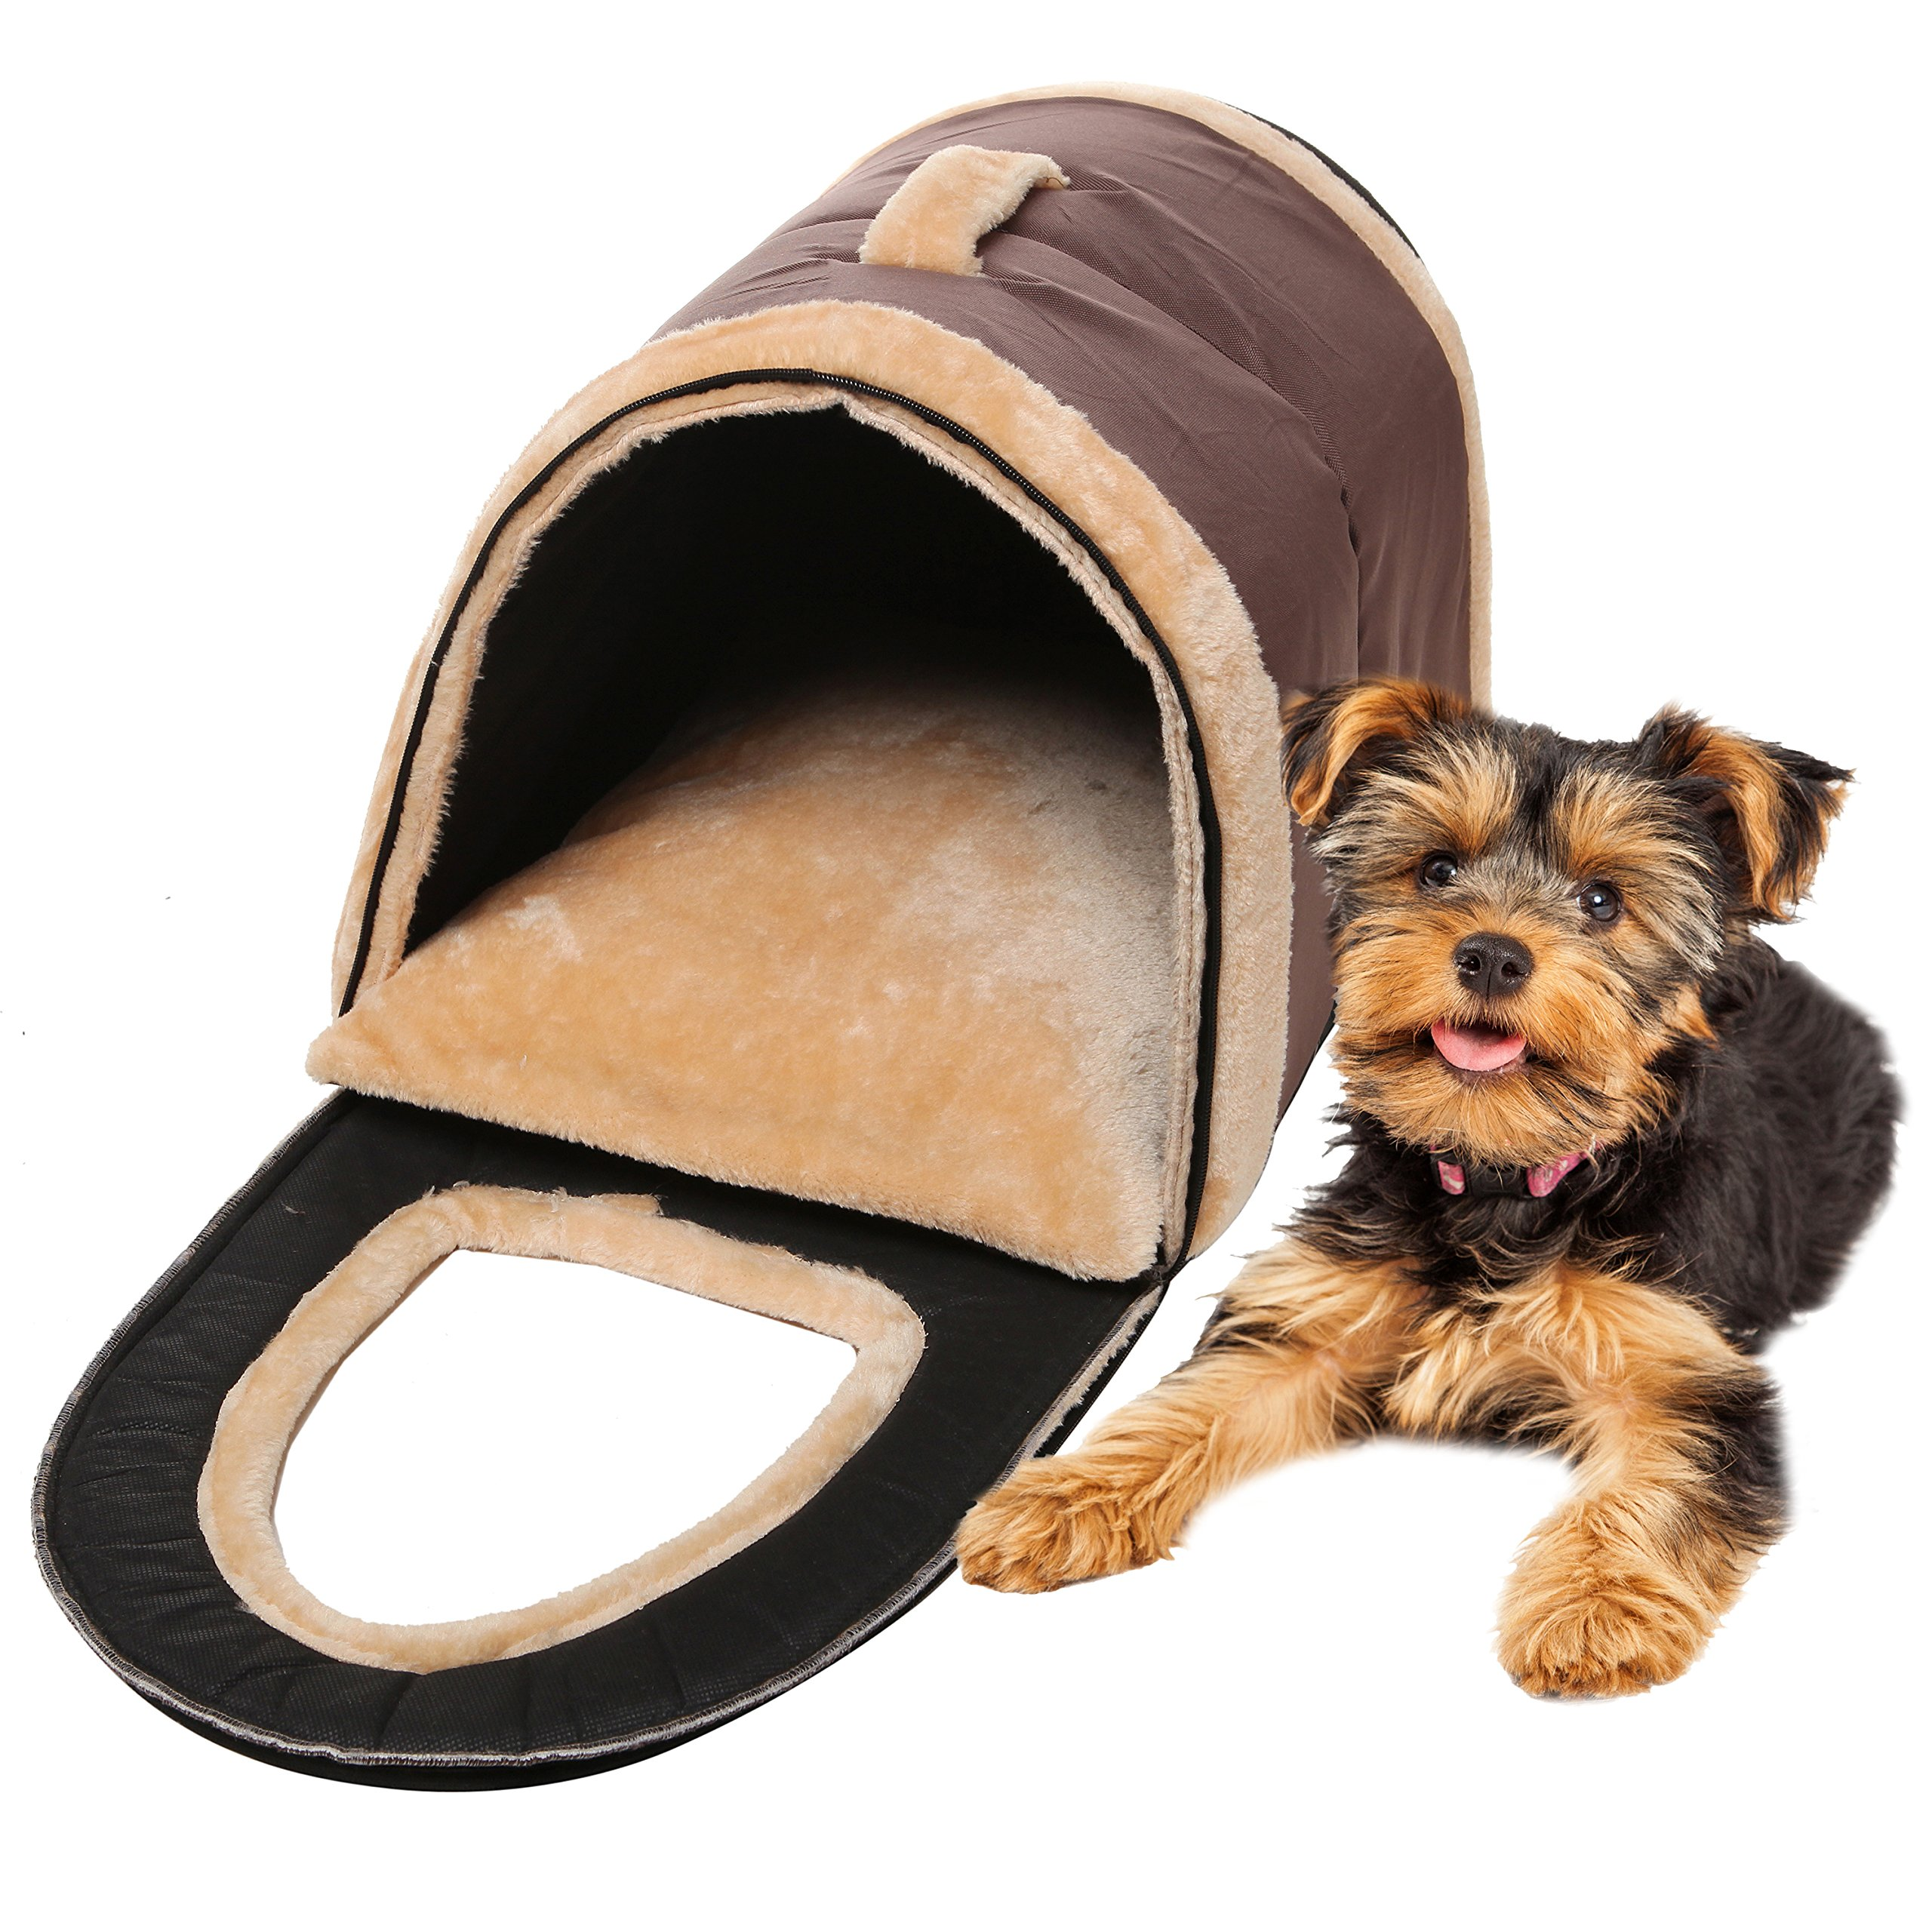 MyGift Brown Portable Soft Sided Plush Pillowed Indoor Small Dog or Cat Convertible Pet House/Bed